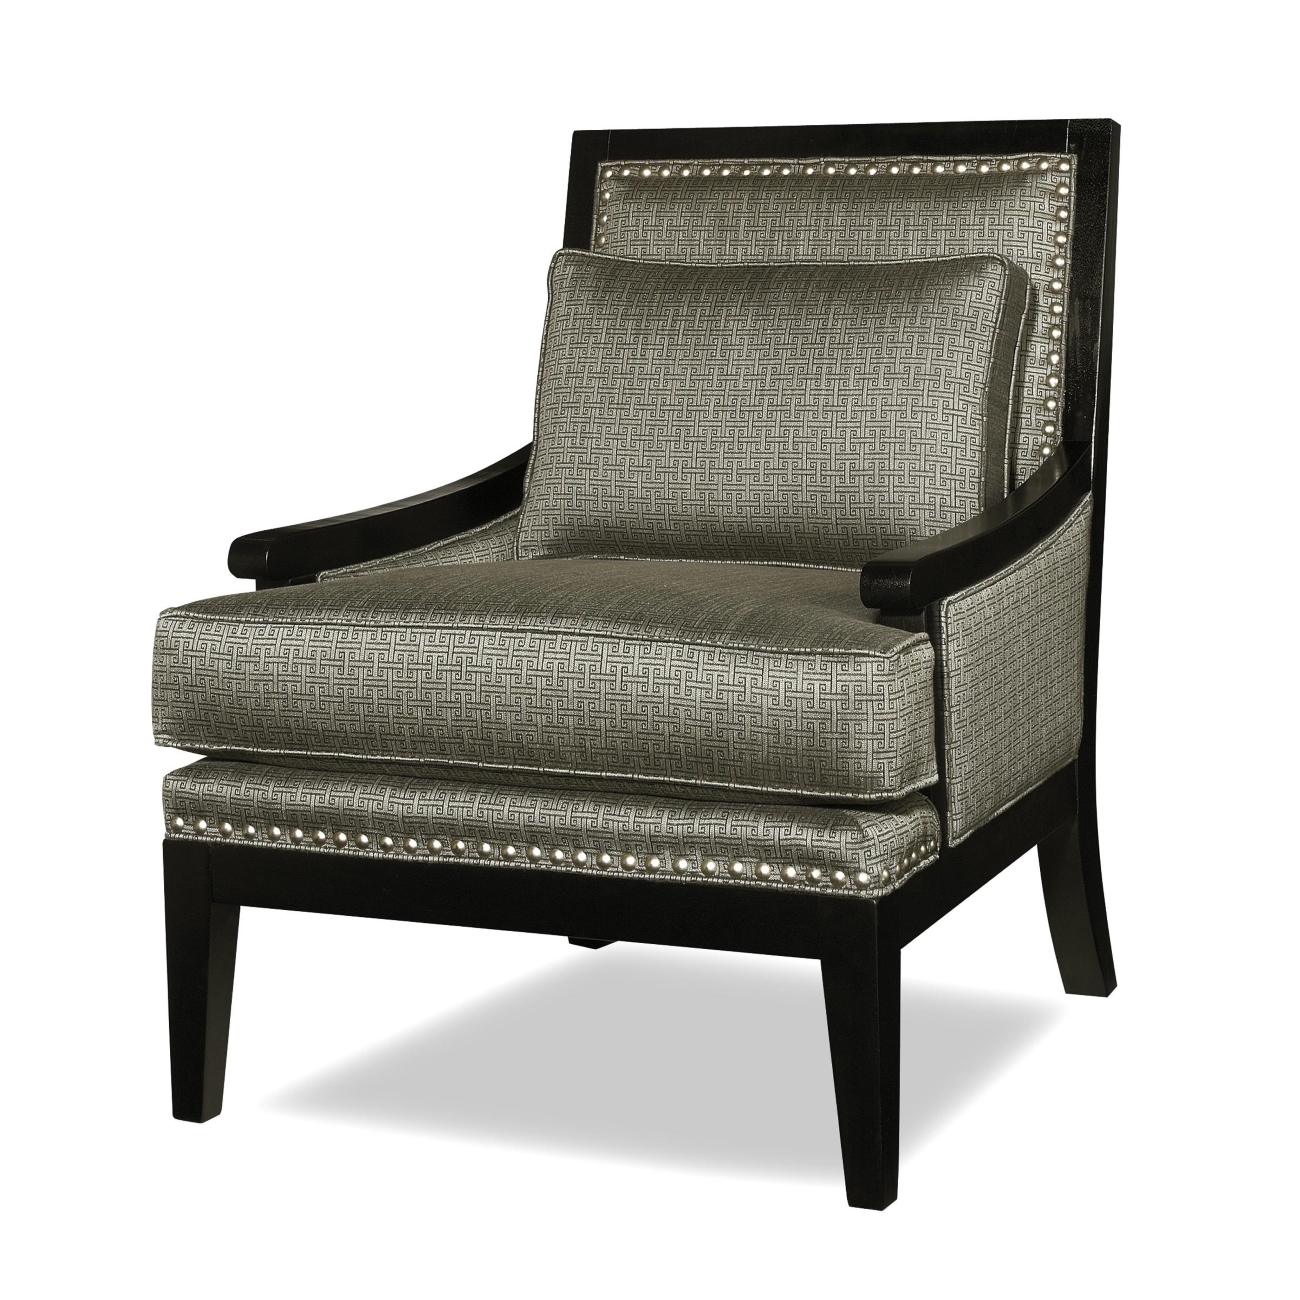 1300 #27261E Previous Article Accent Chair For Added Elegance image Craftmaster Garage Doors 36631300